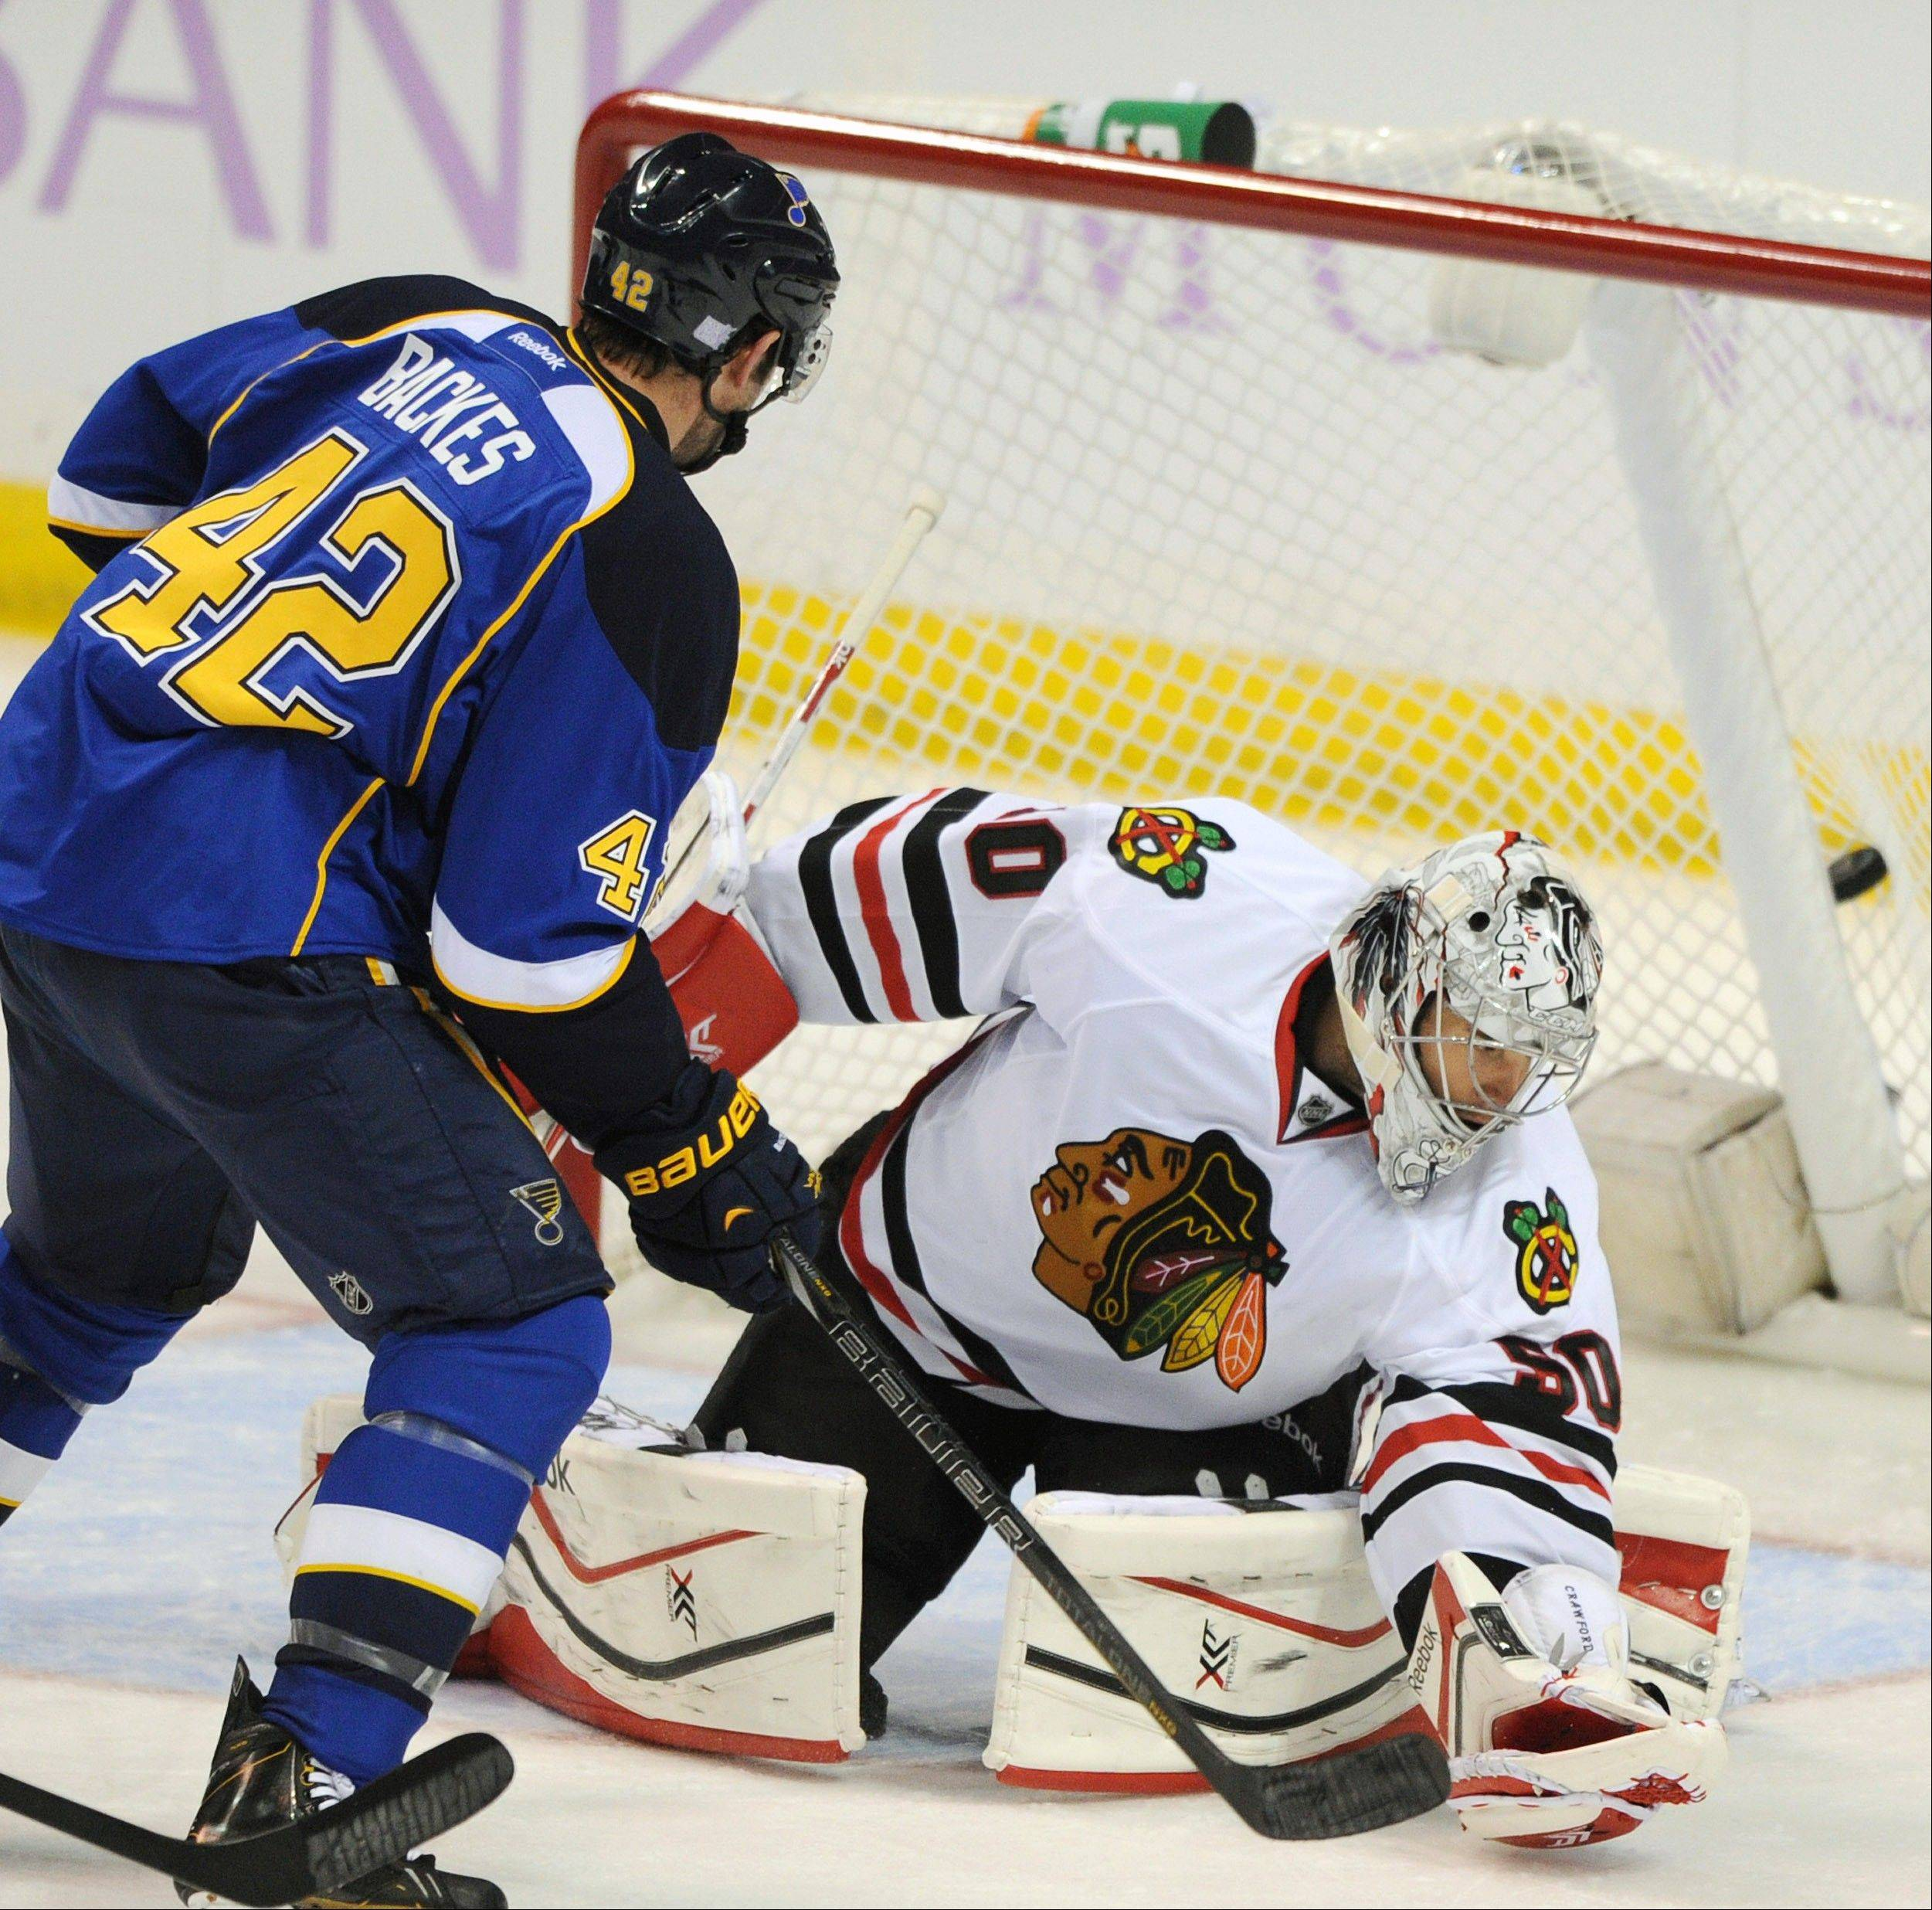 Chicago Blackhawks' goalie Corey Crawford, right, is scored on by St. Louis Blues' David Backes (42) during the second period of an NHL hockey game Wednesday, Oct. 9, 2013, in St. Louis.